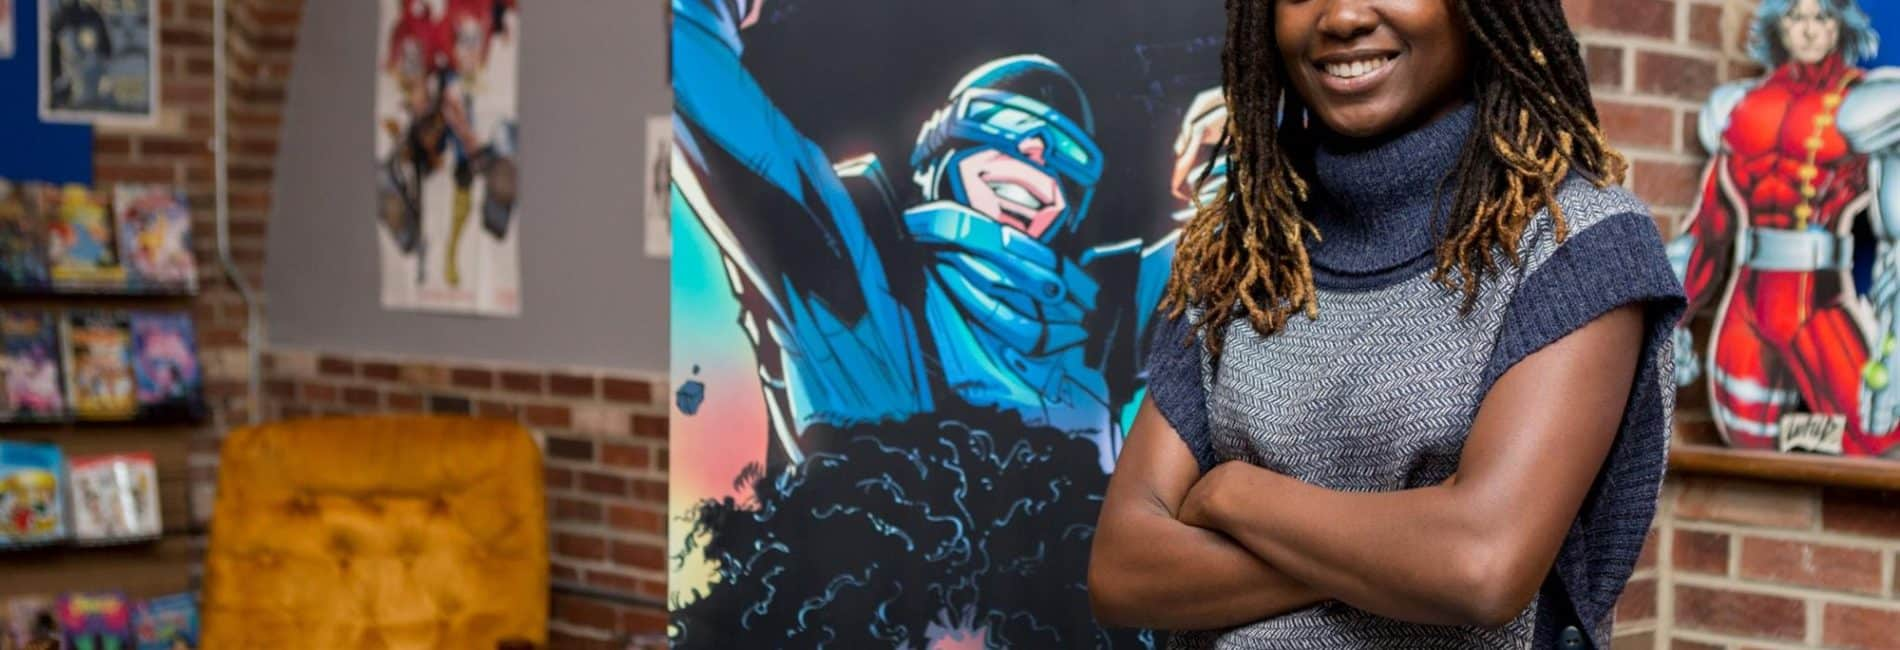 NBC: First Black Woman to Win Eisner Award Is Conquering the Comic Industry